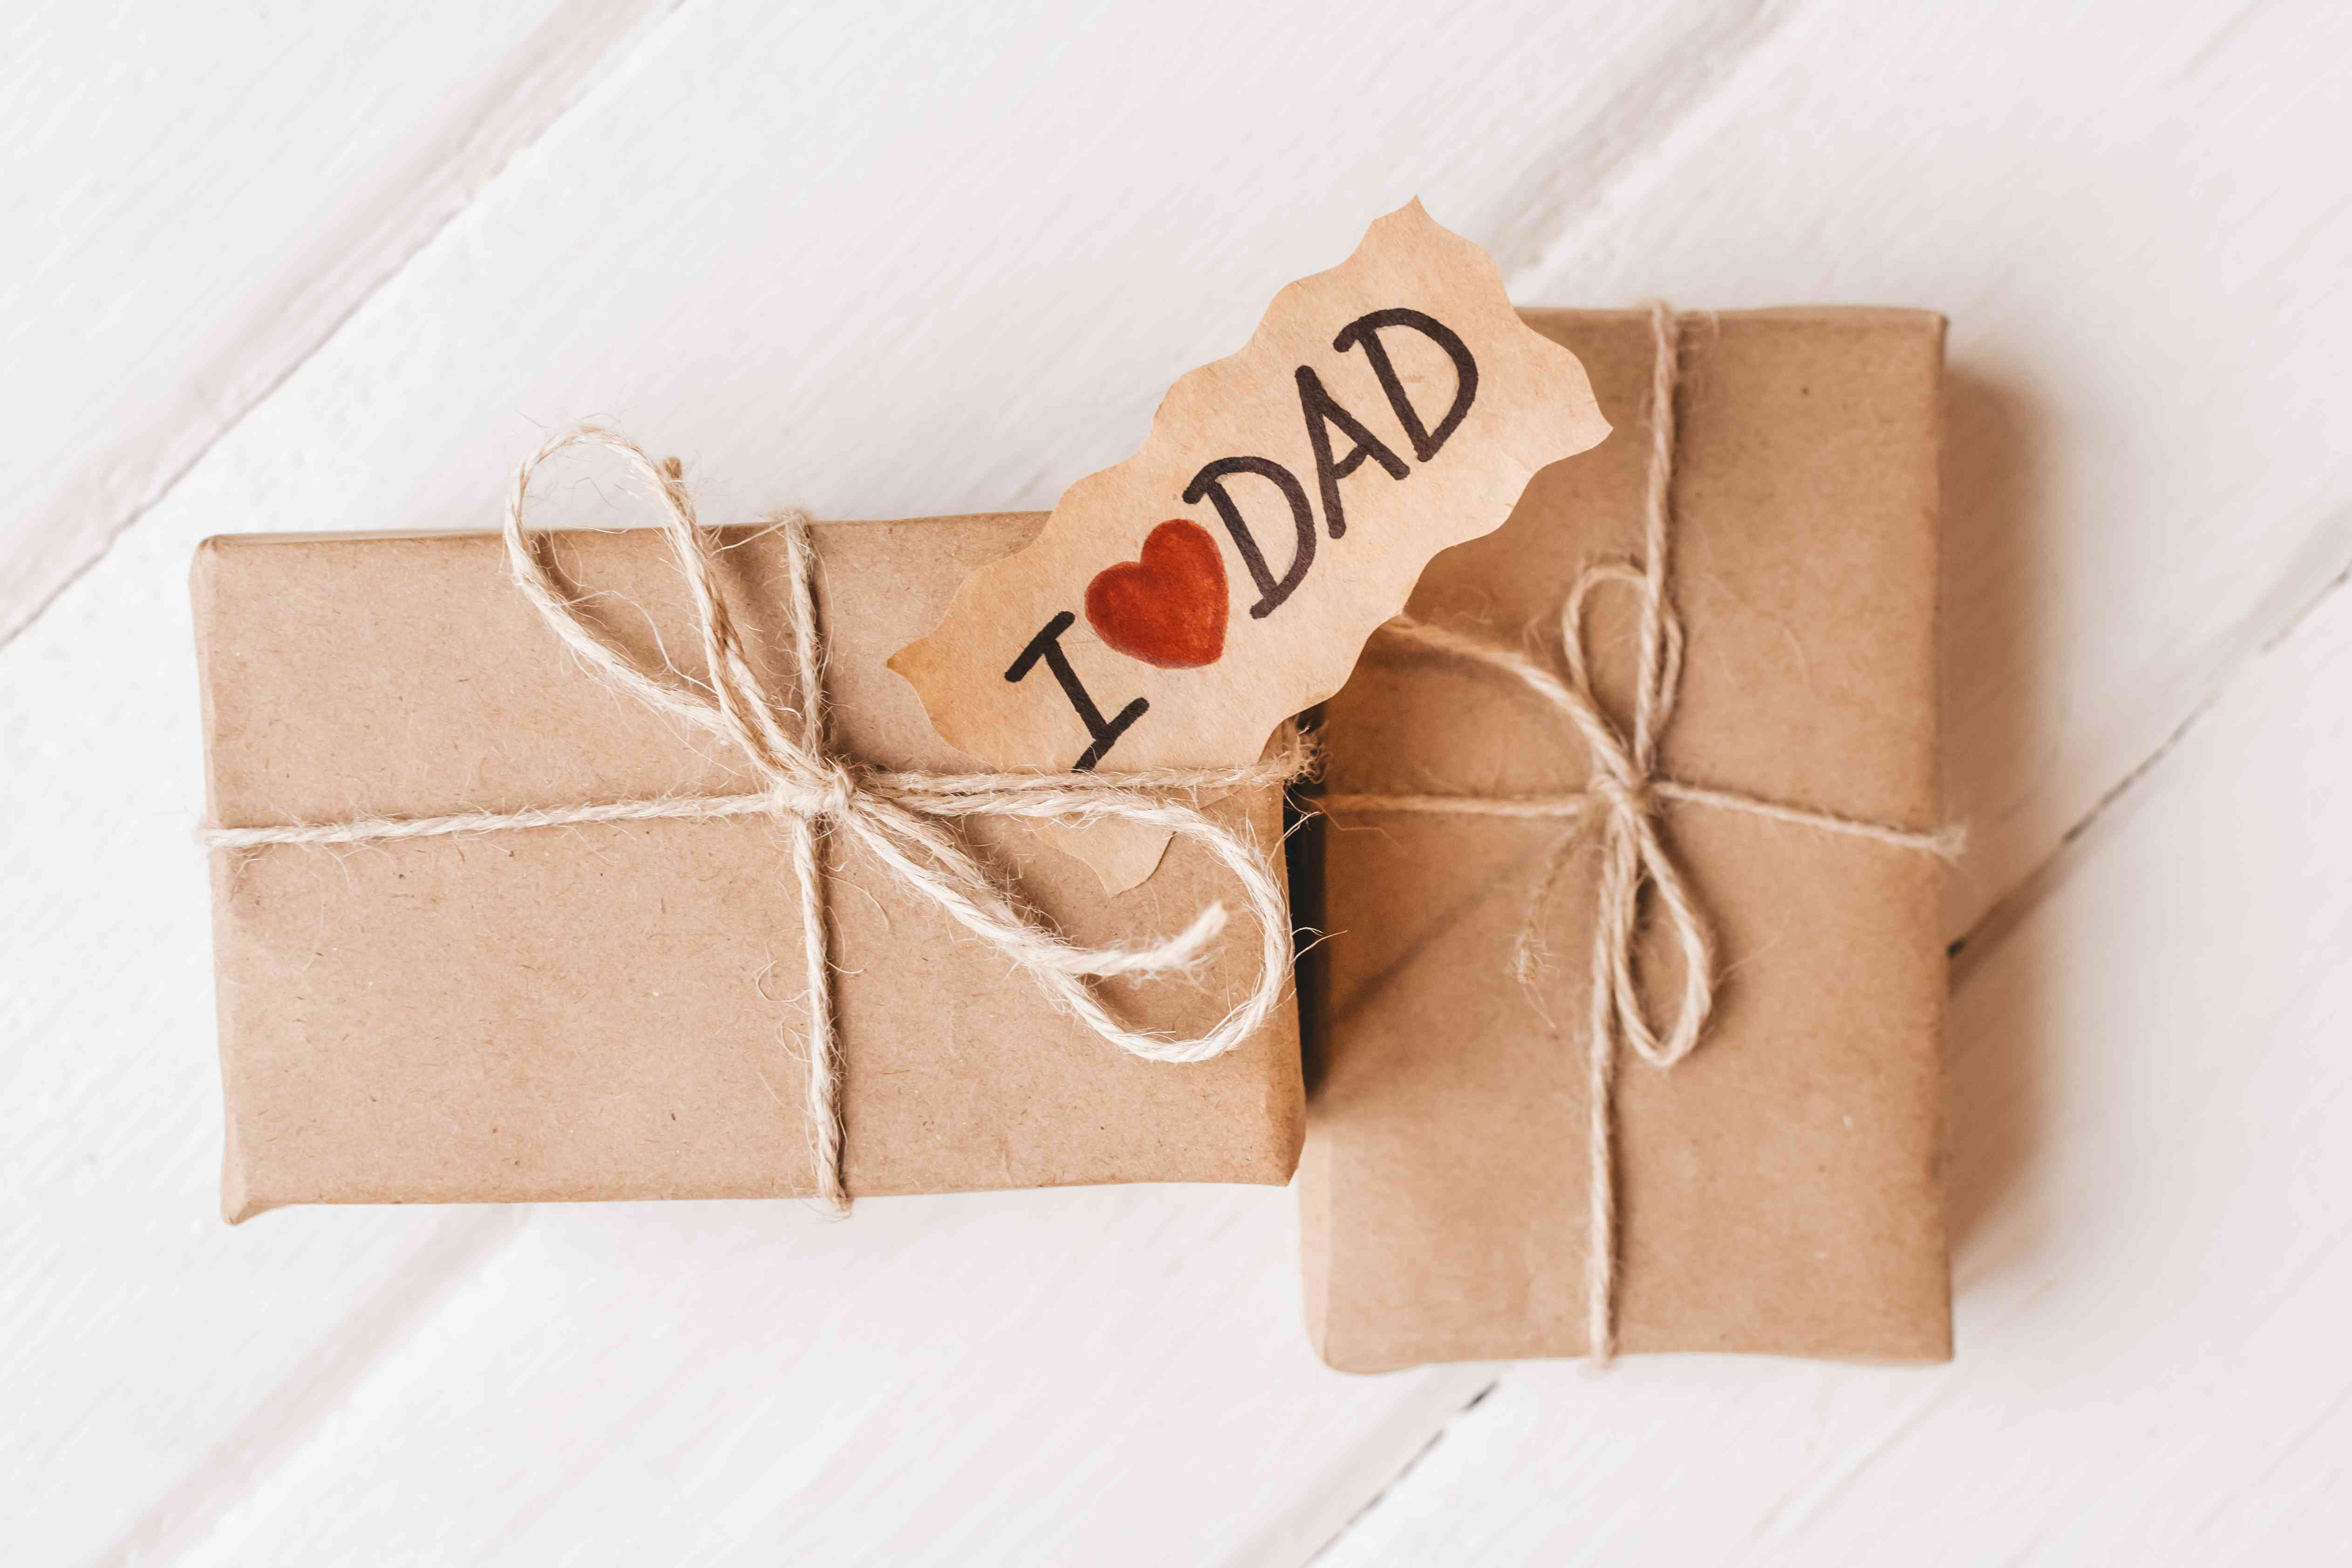 Gift box with a tag on white wooden background. Father's day or birthday concept.